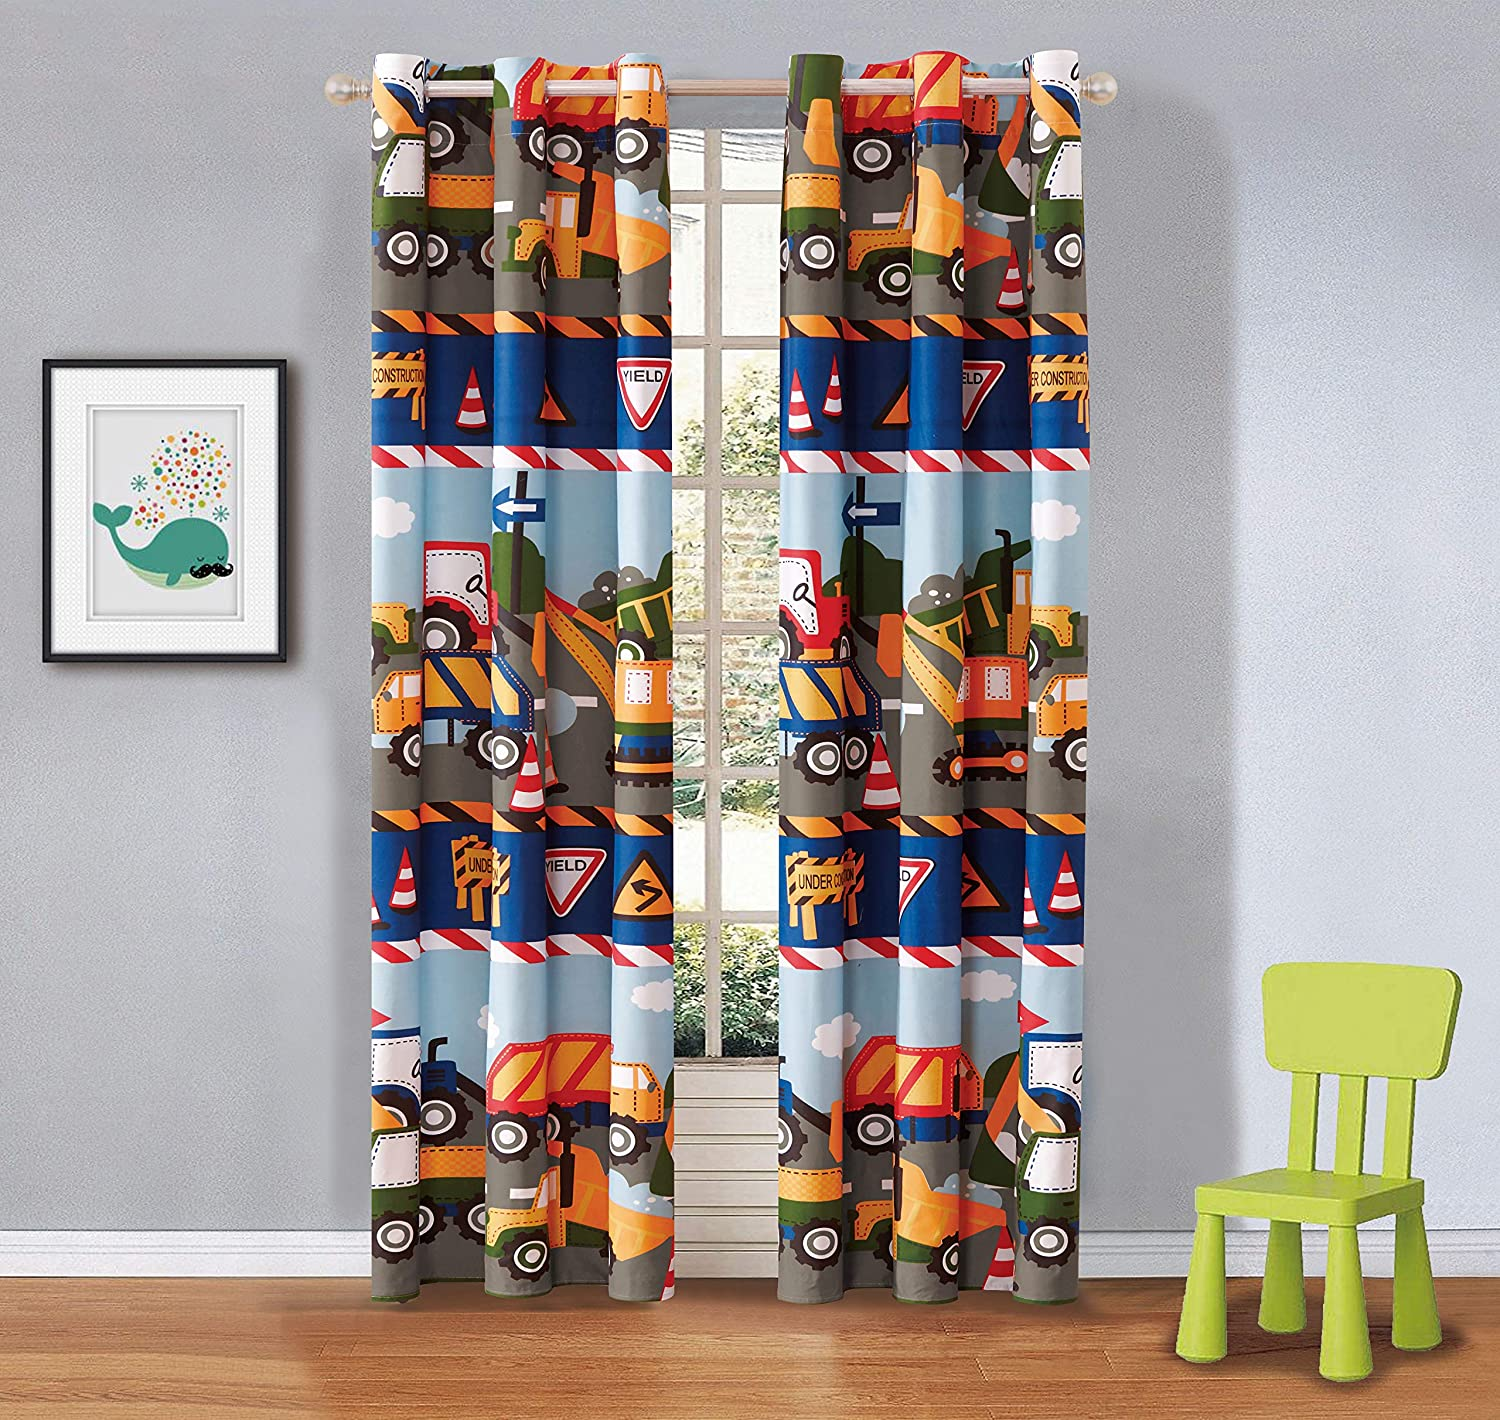 Linen Plus 2 Panel Curtain Set for Kids Construction Tractors Blue Red Green Yellow Grey White New